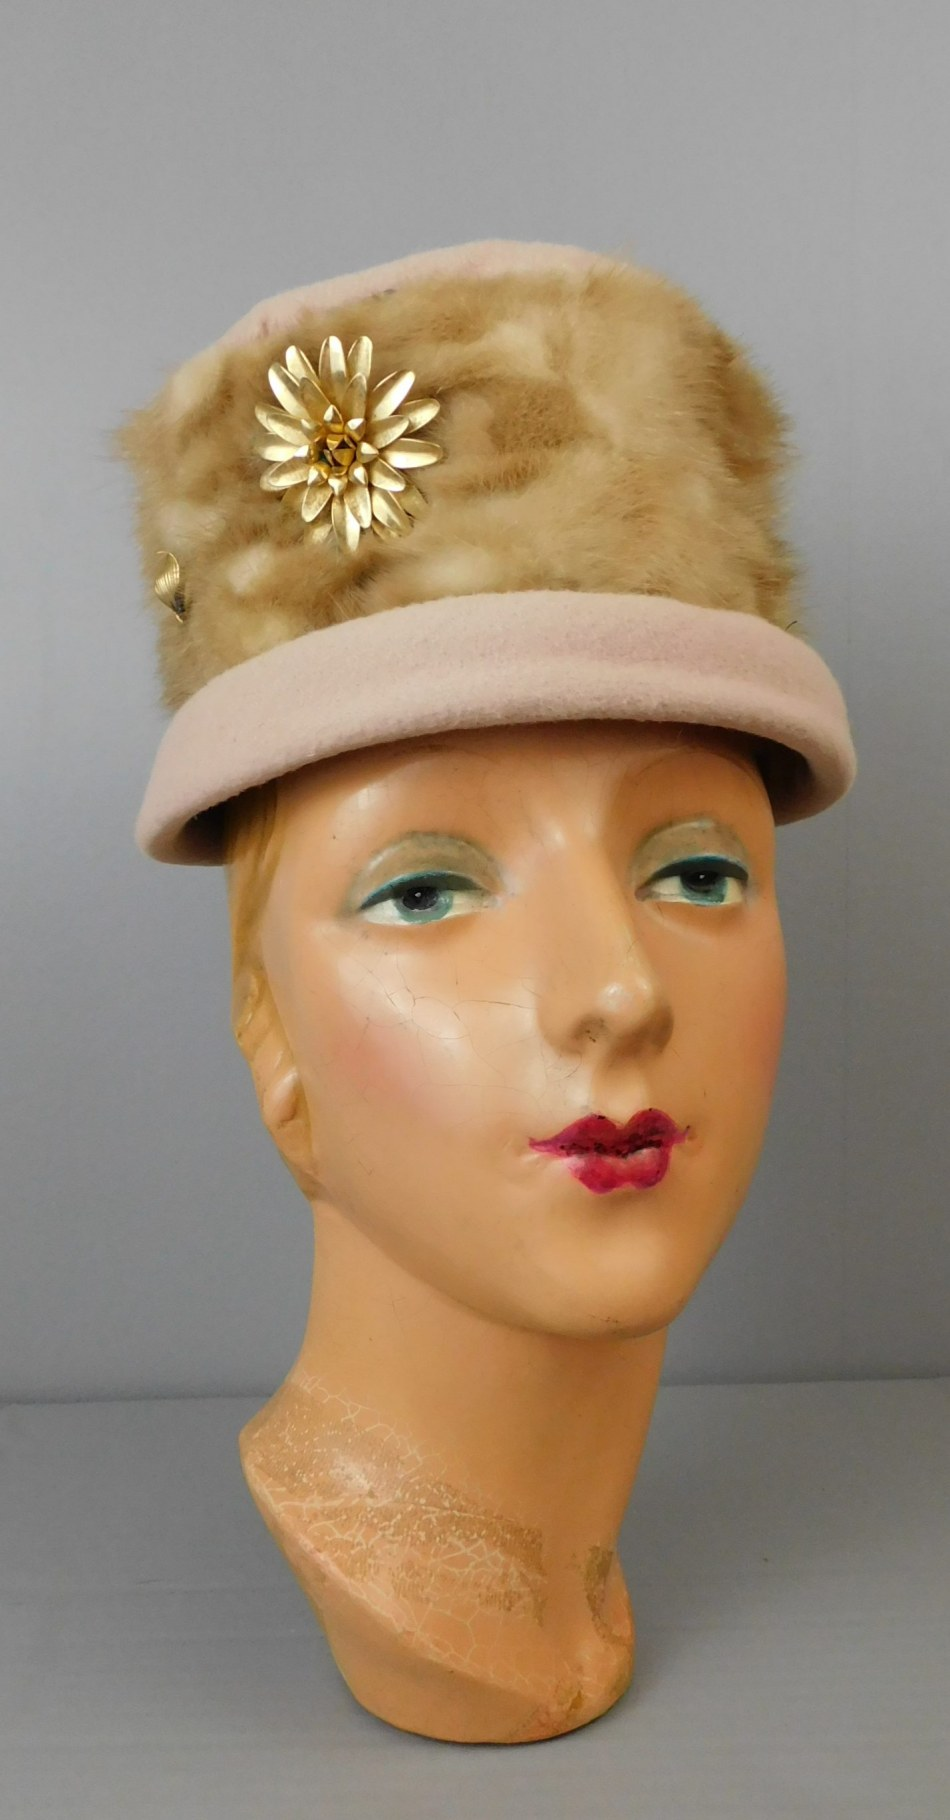 Vintage Mink and Felt Hat with Large Gold Flower Brooch, 1960s 21 inch head